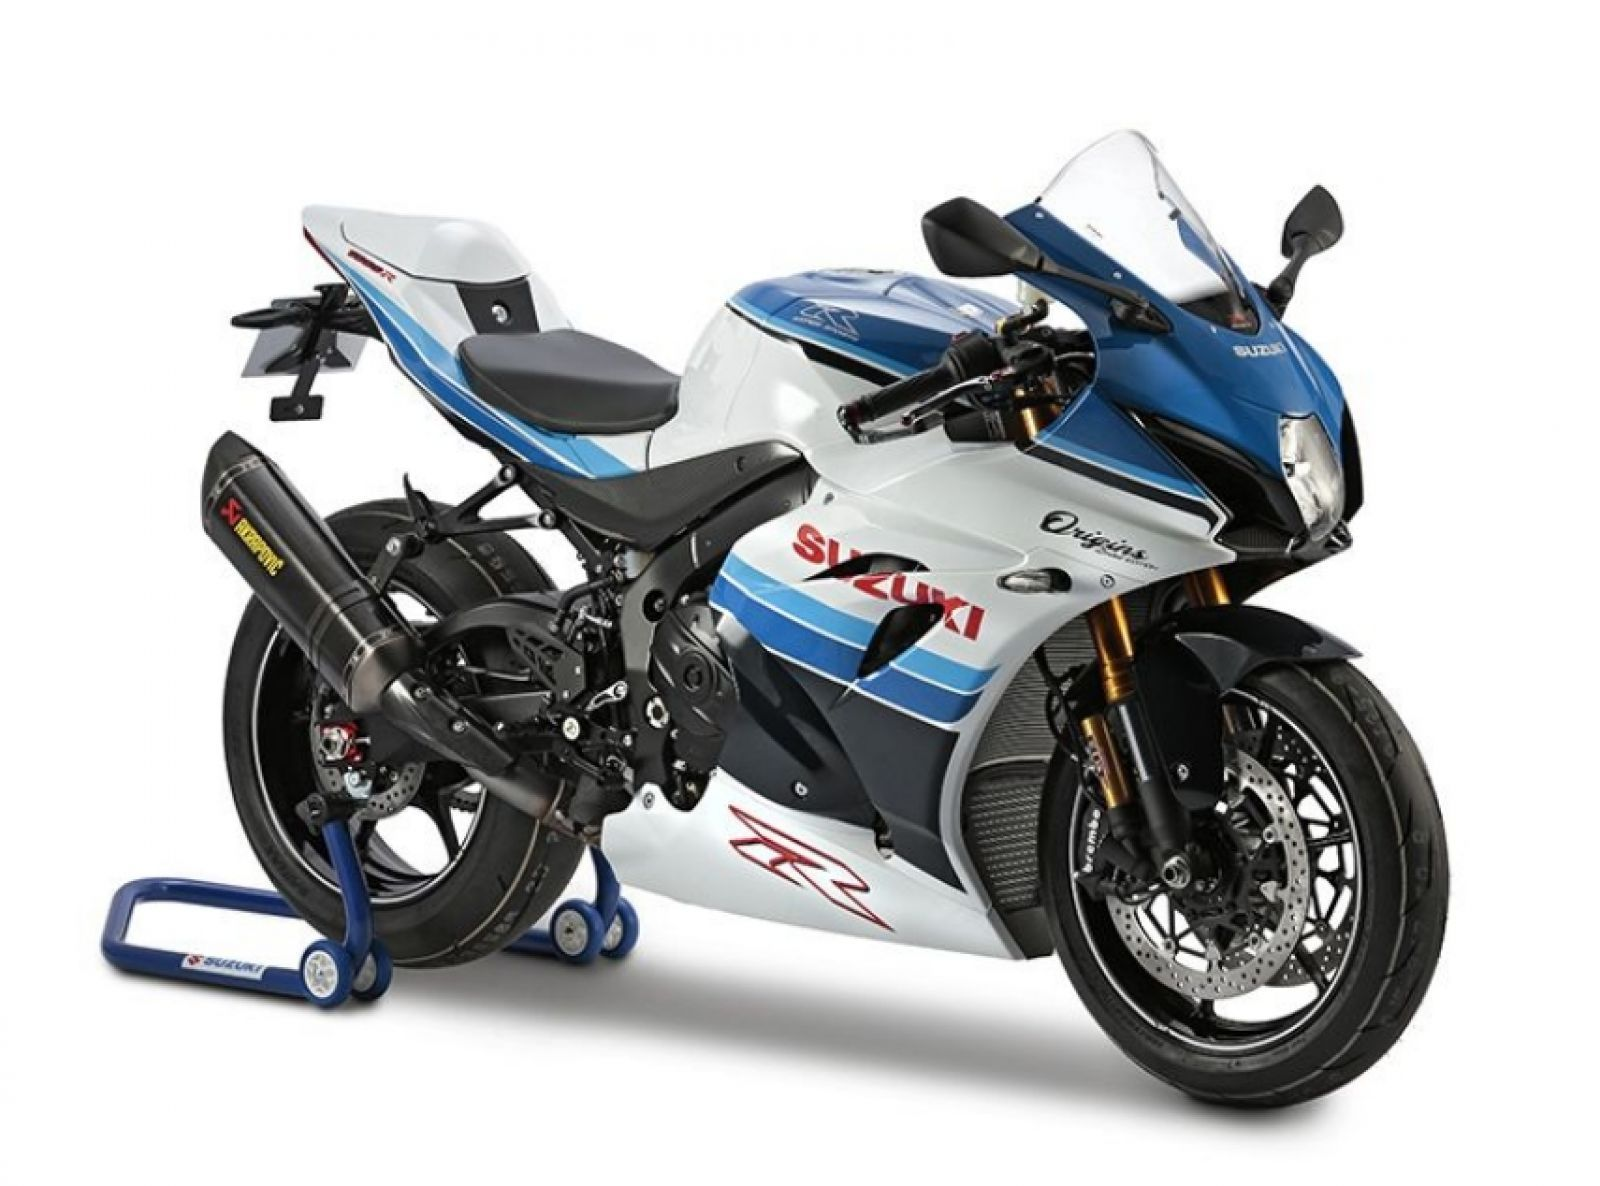 actualité - GSX-R1000R Origins - image d'illustration 16